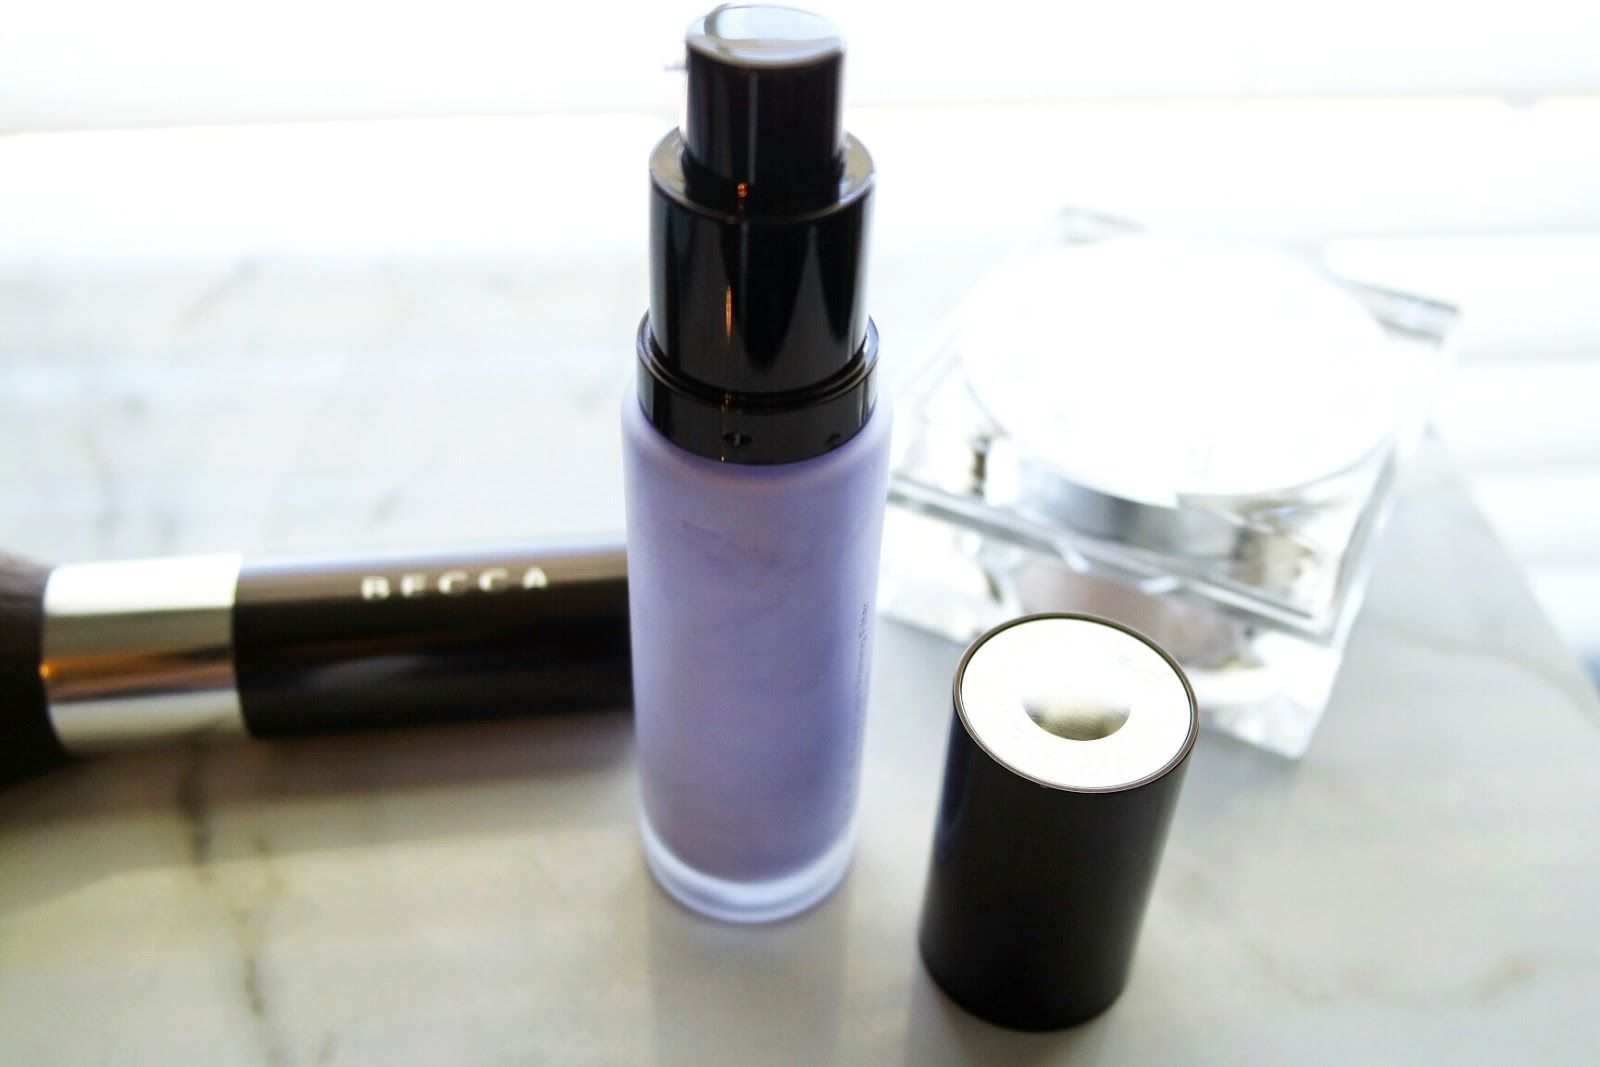 Becca Cosmetics New Products First Light Priming Filter